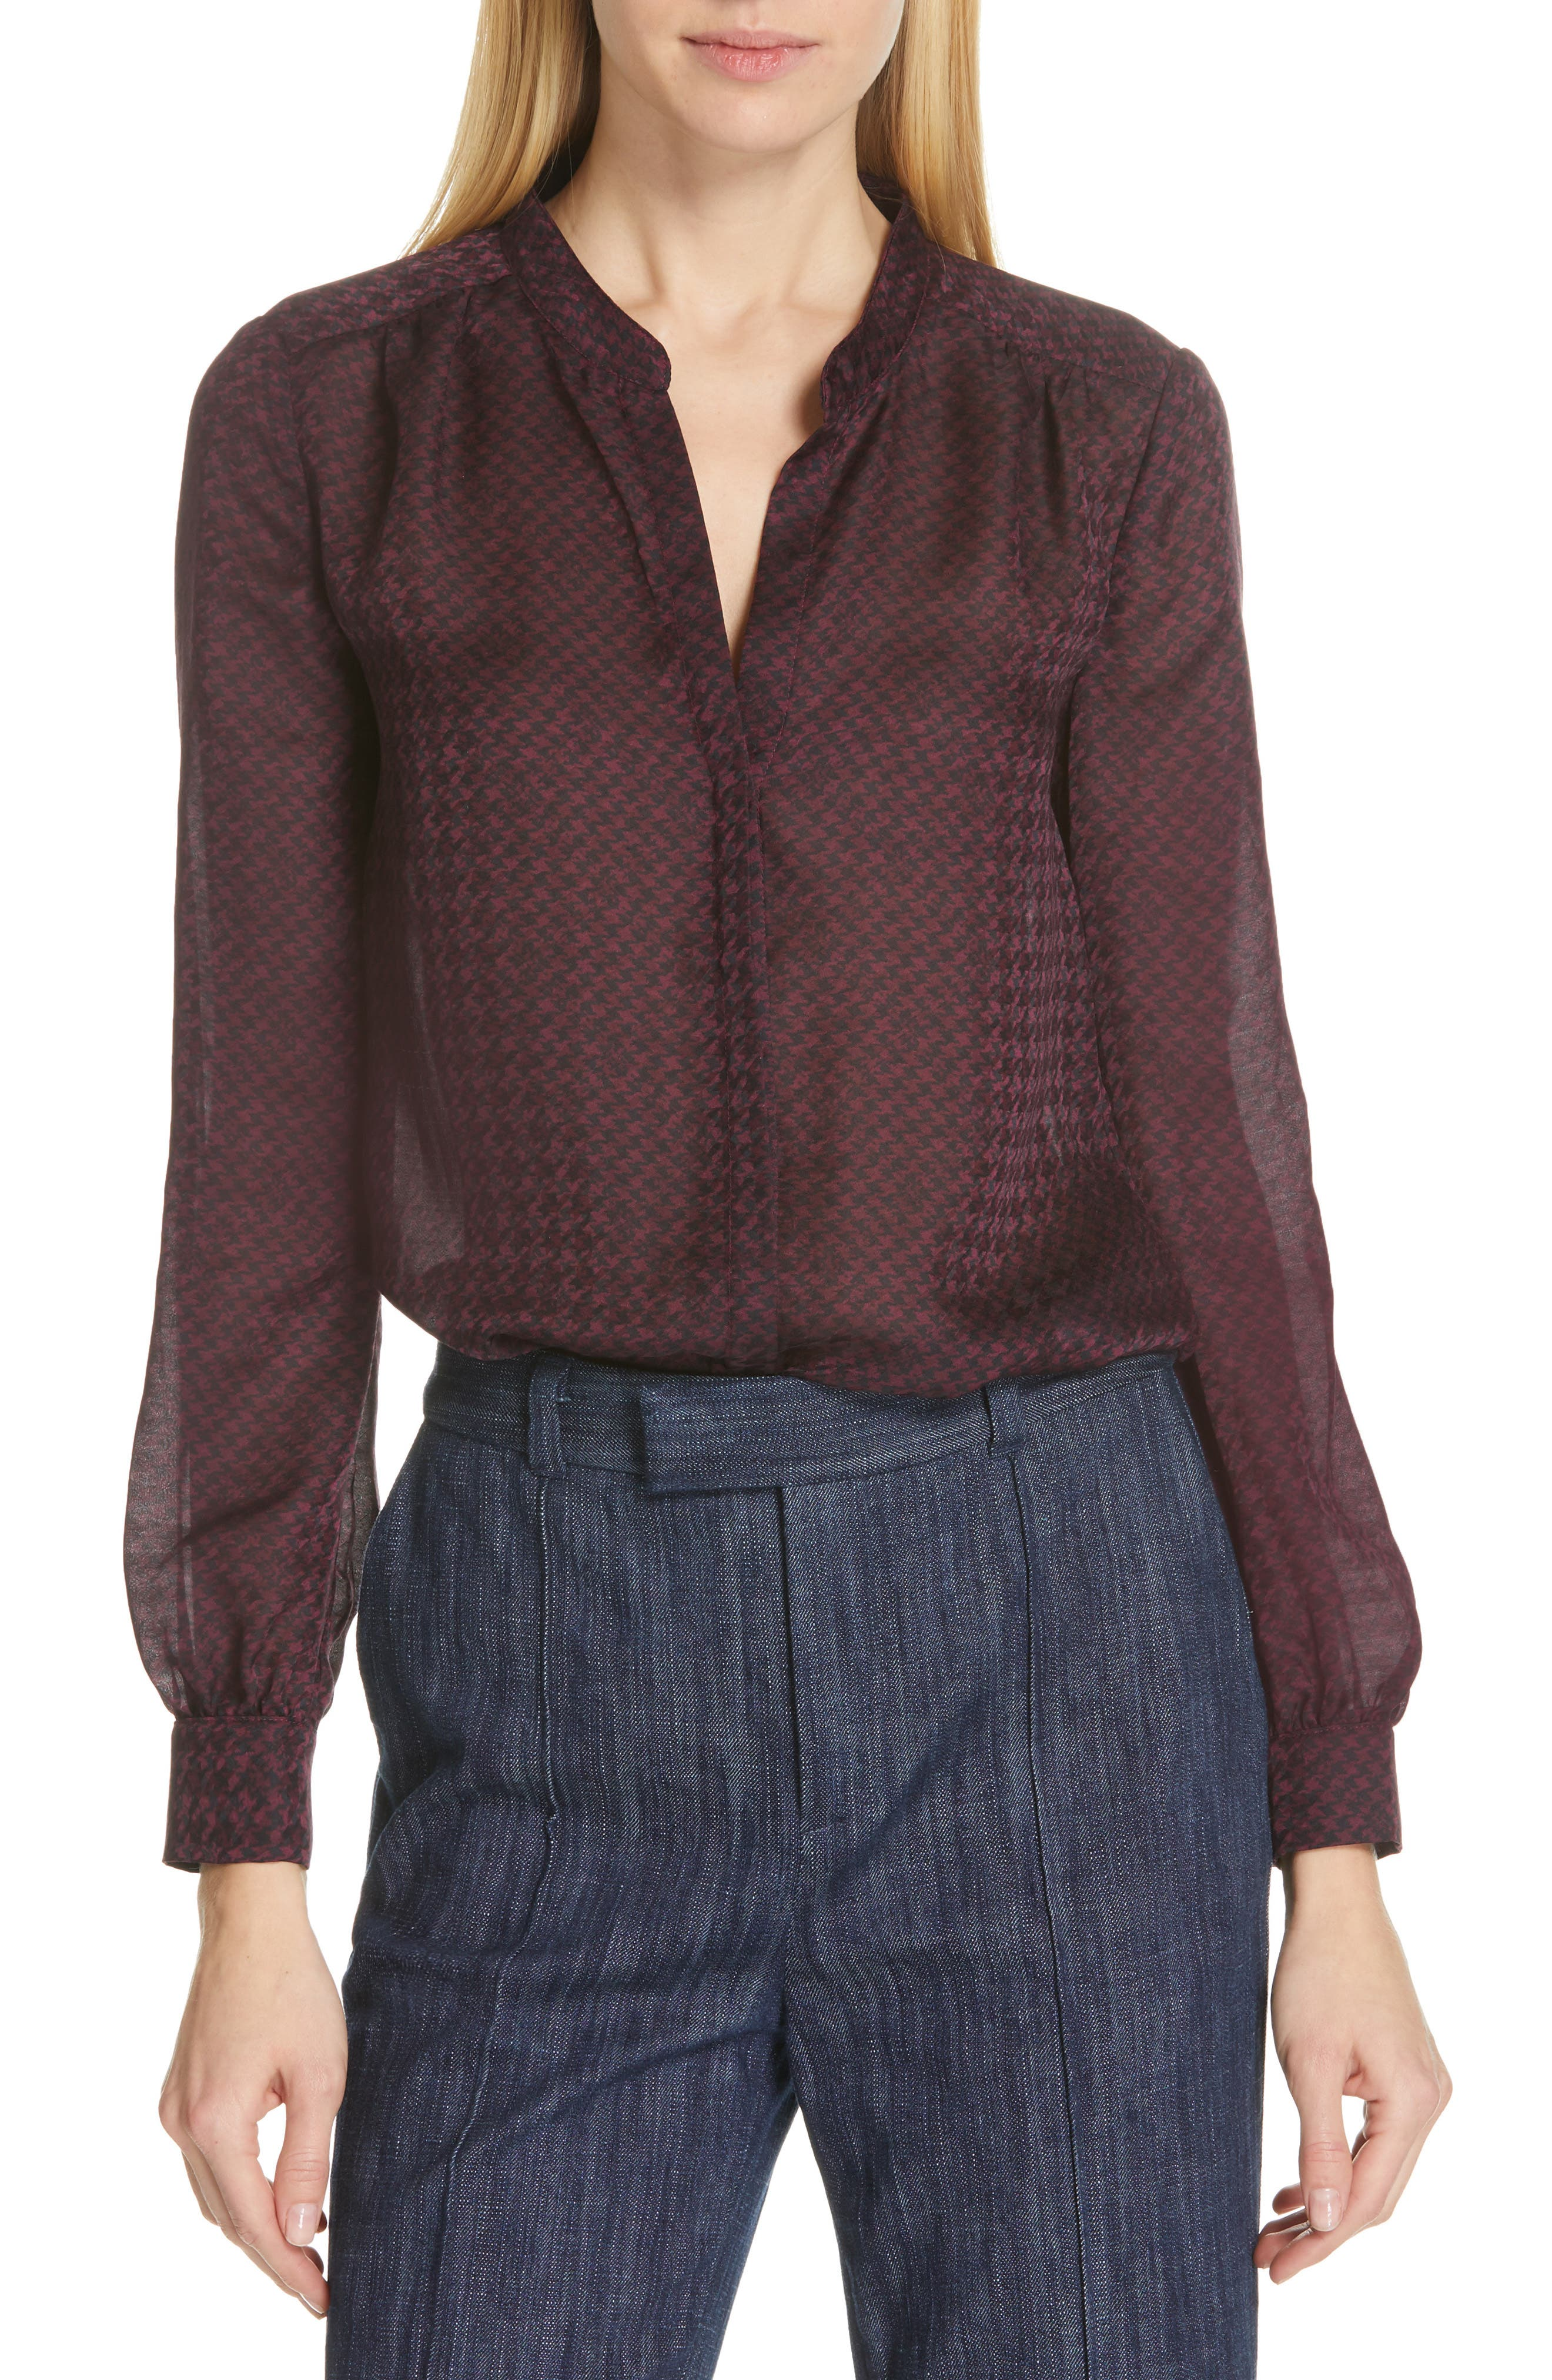 Mintee Houndstooth Check Blouse,                             Main thumbnail 1, color,                             501